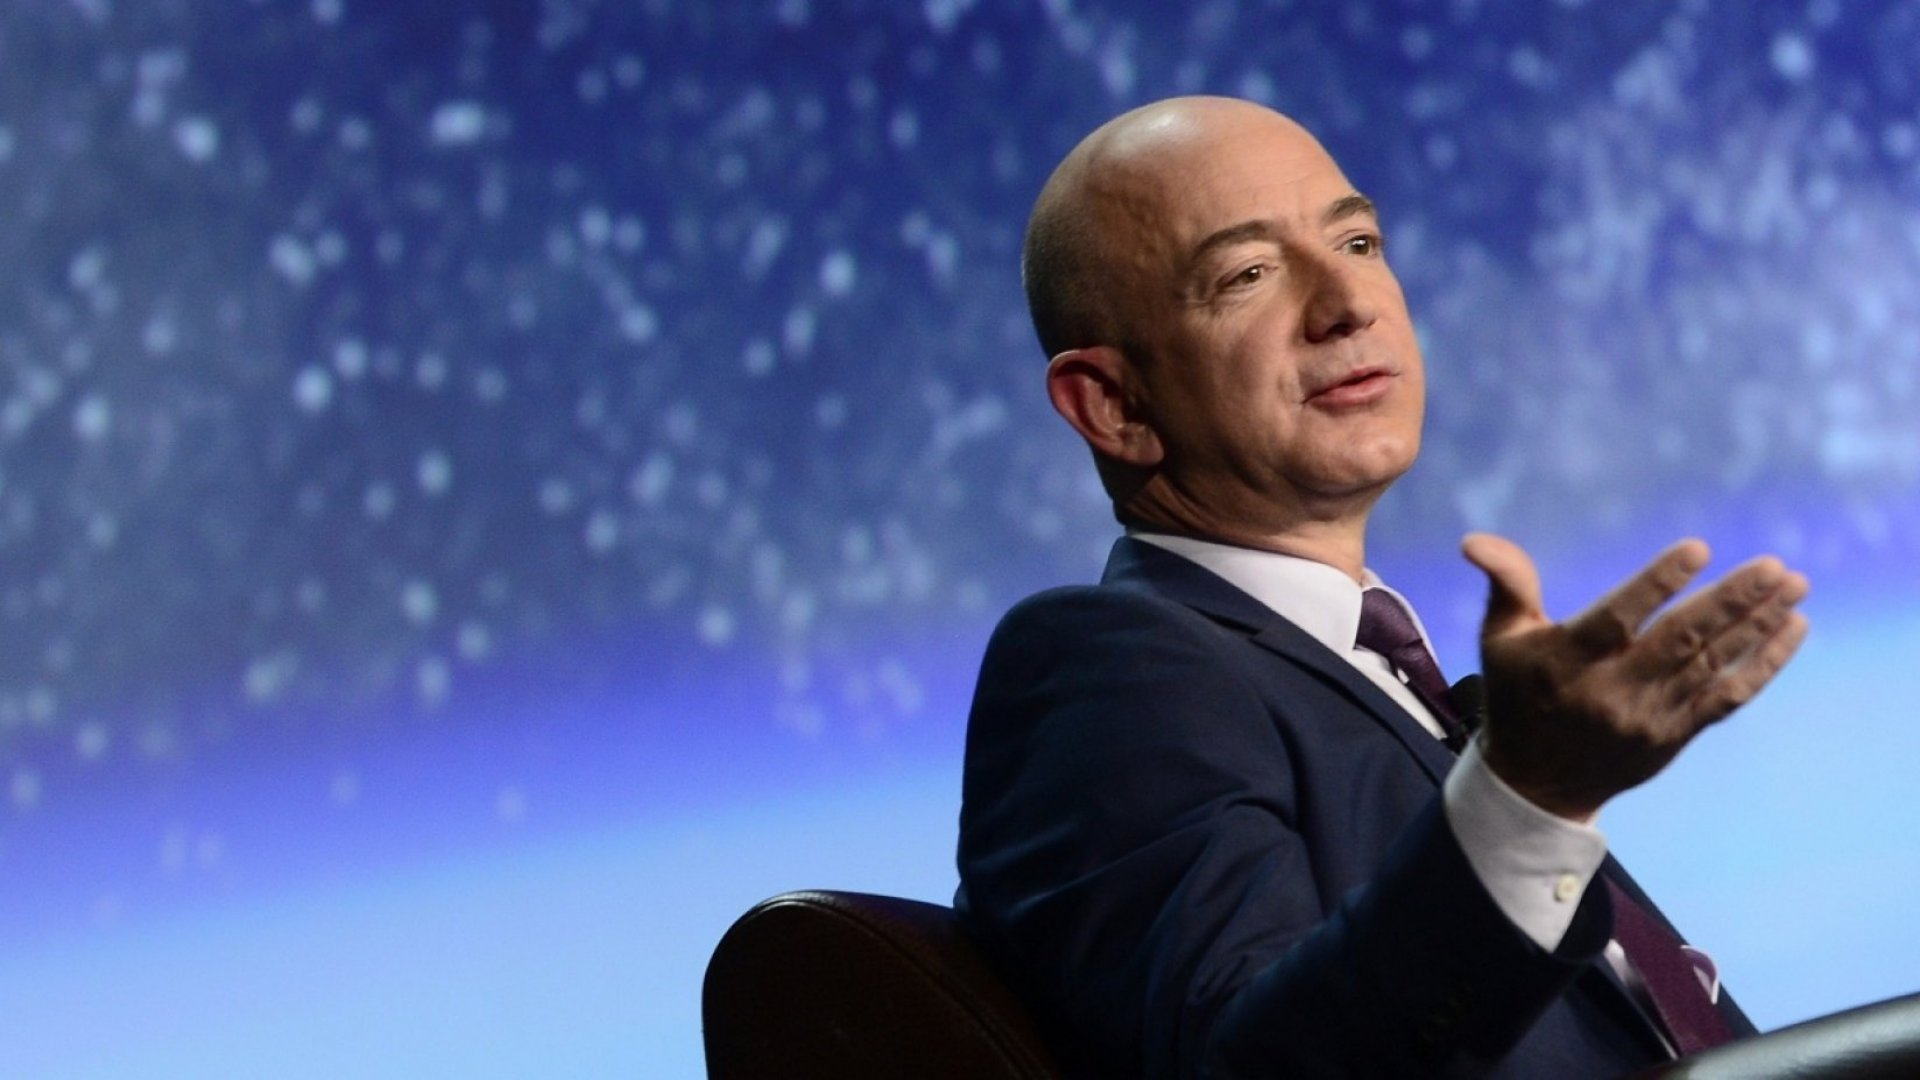 Jeff Bezos Says This Is His Most Important Work And It's Not Amazon